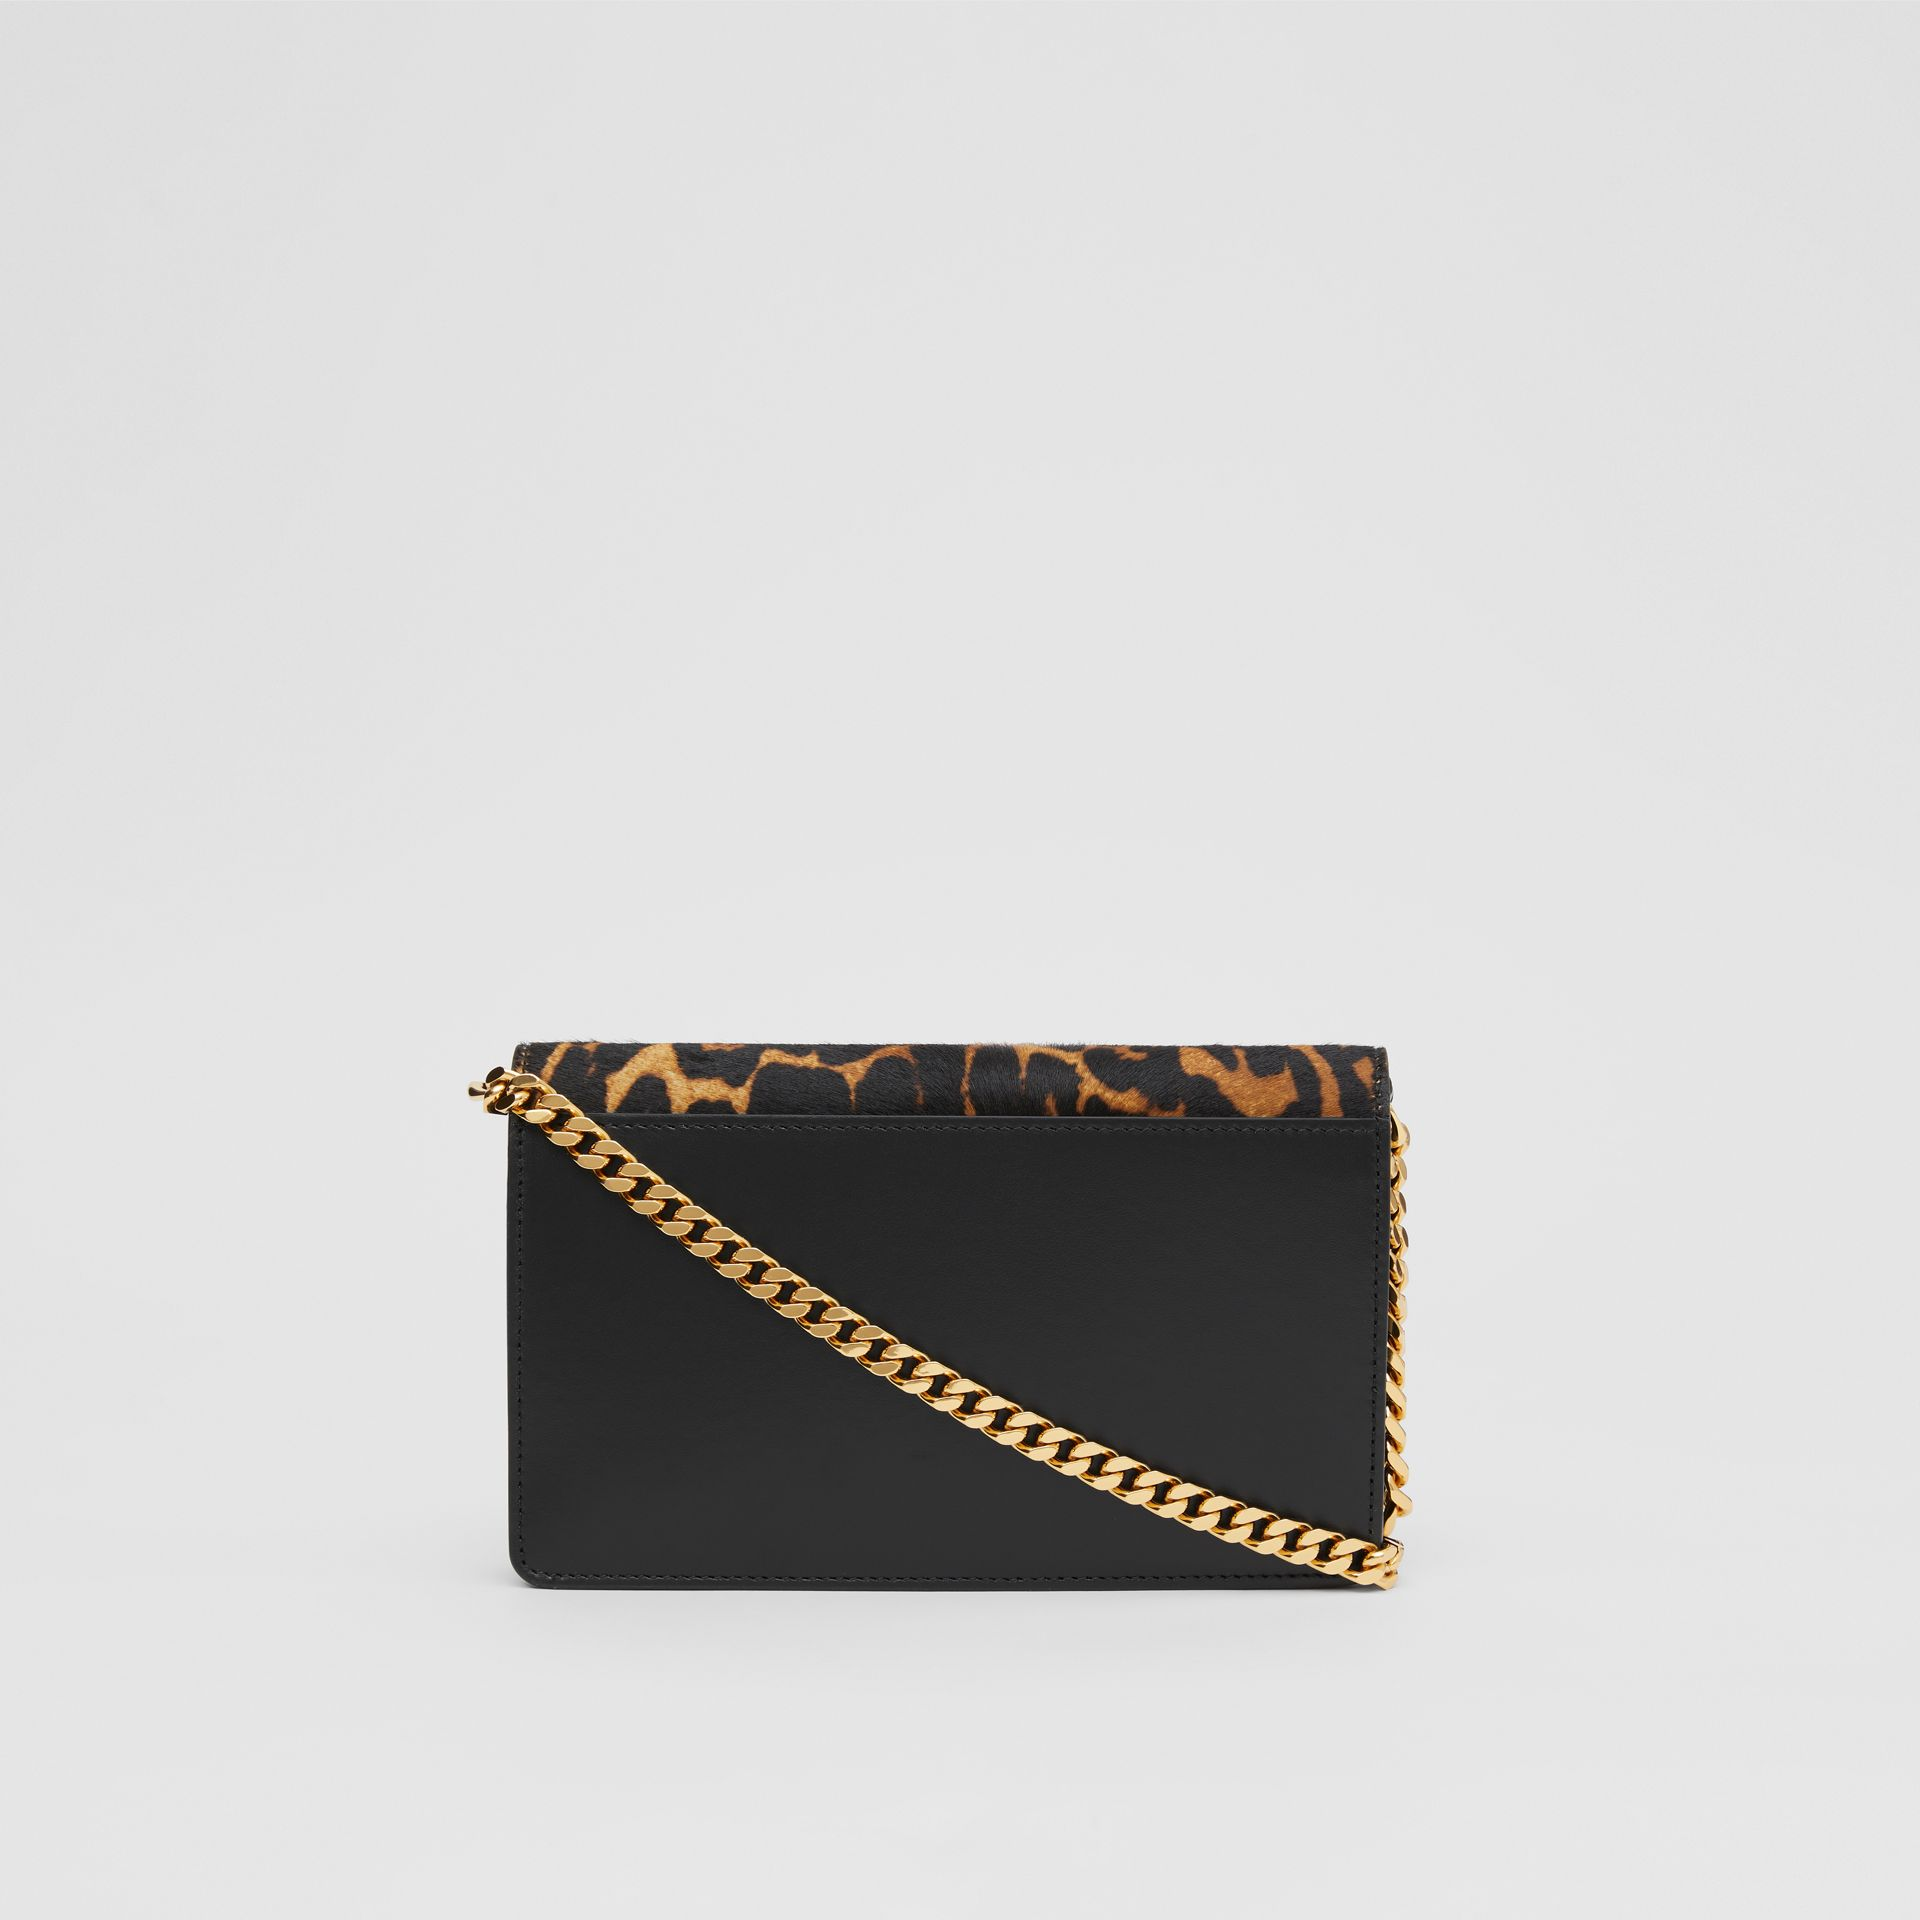 Small Leopard Print Calf Hair Shoulder Bag in Dark Mustard - Women | Burberry United Kingdom - gallery image 7